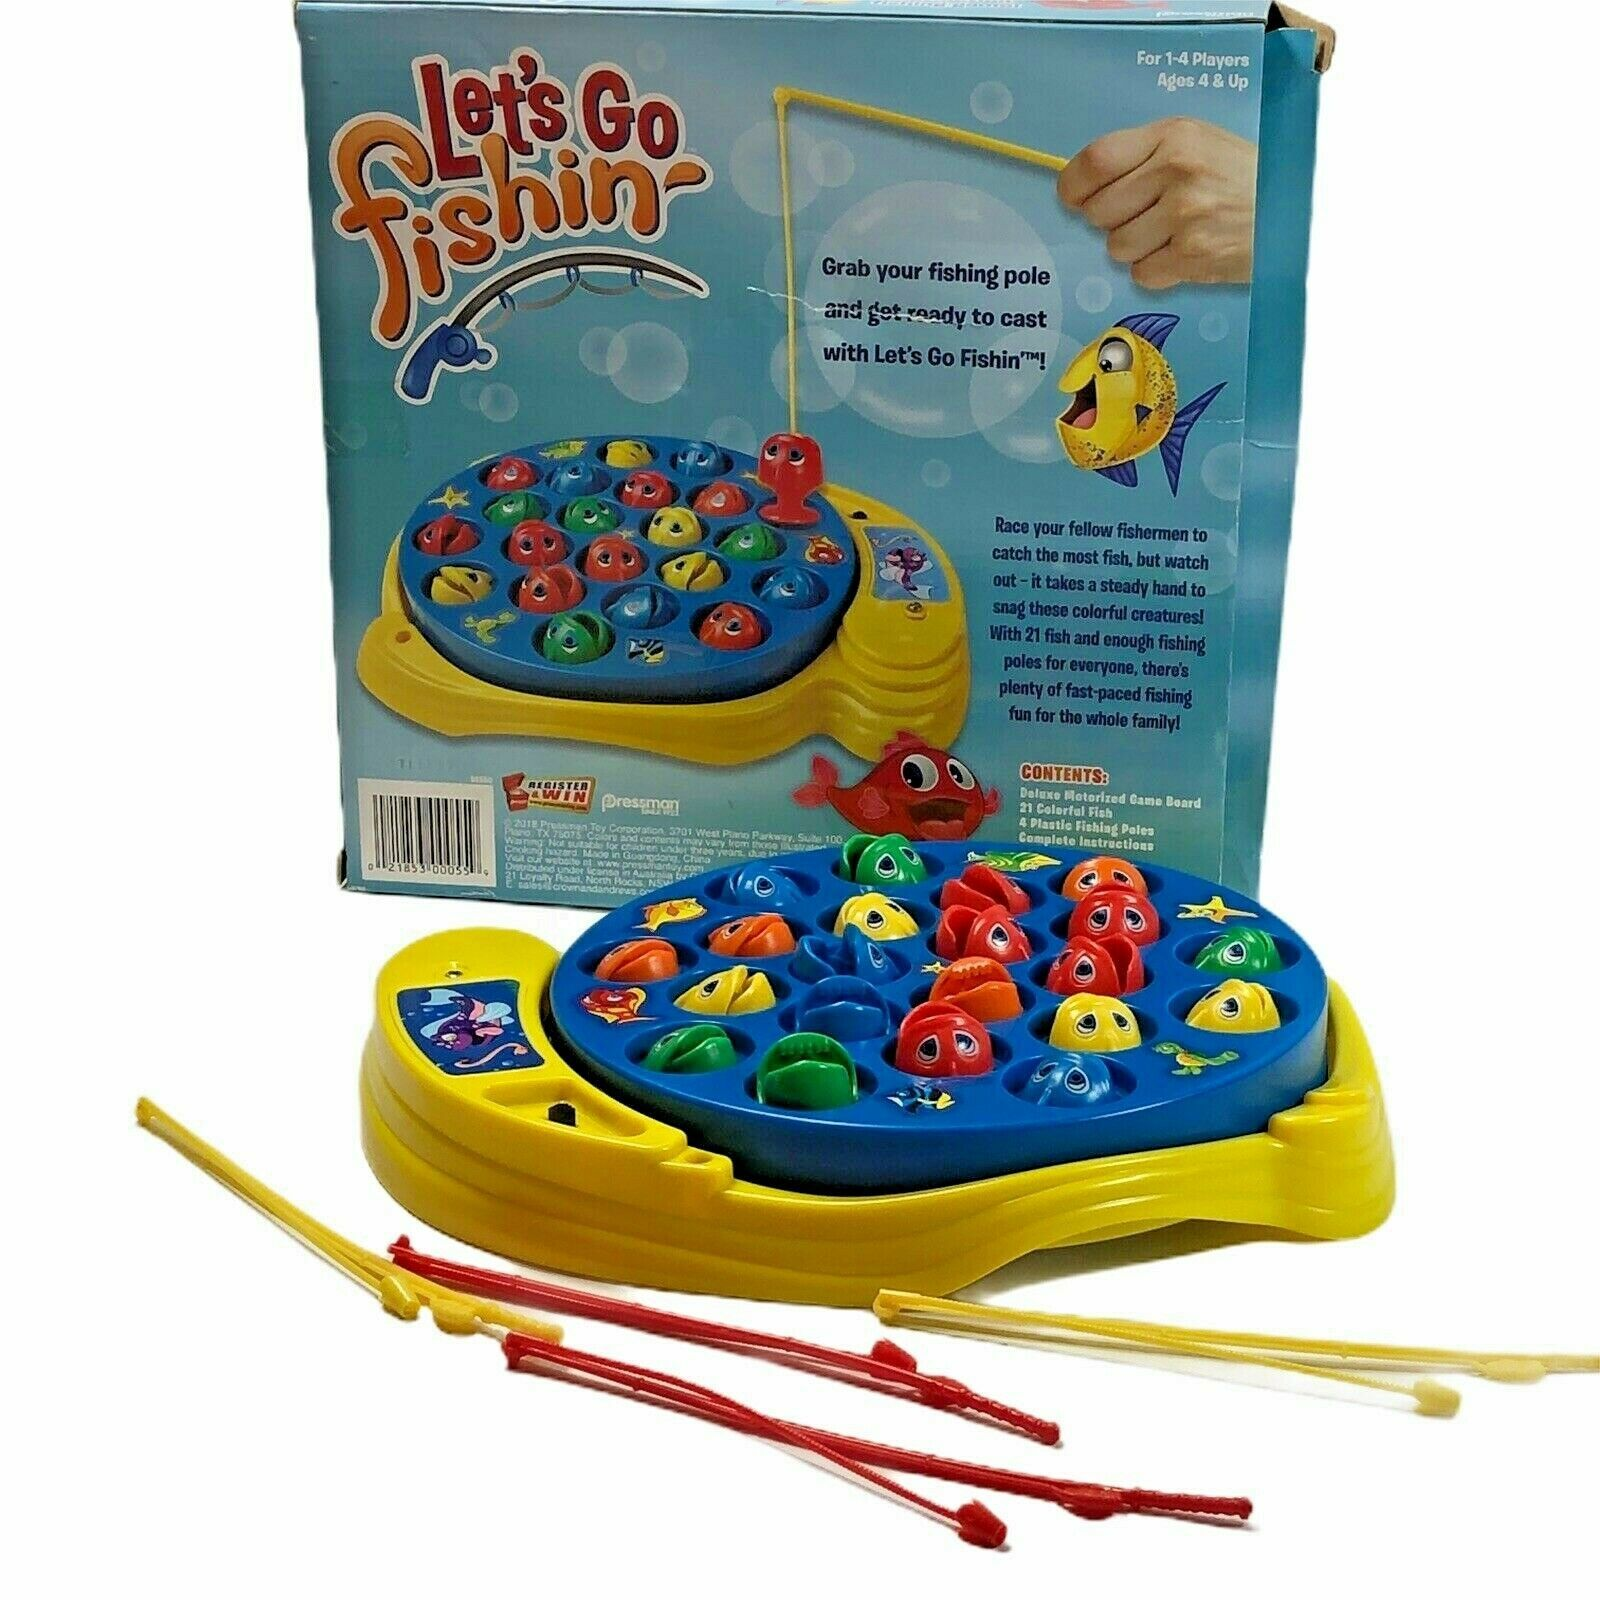 Primary image for Let's Go Fishing Game Kids Preschool Catch Fish Motorized Action Complete in Box